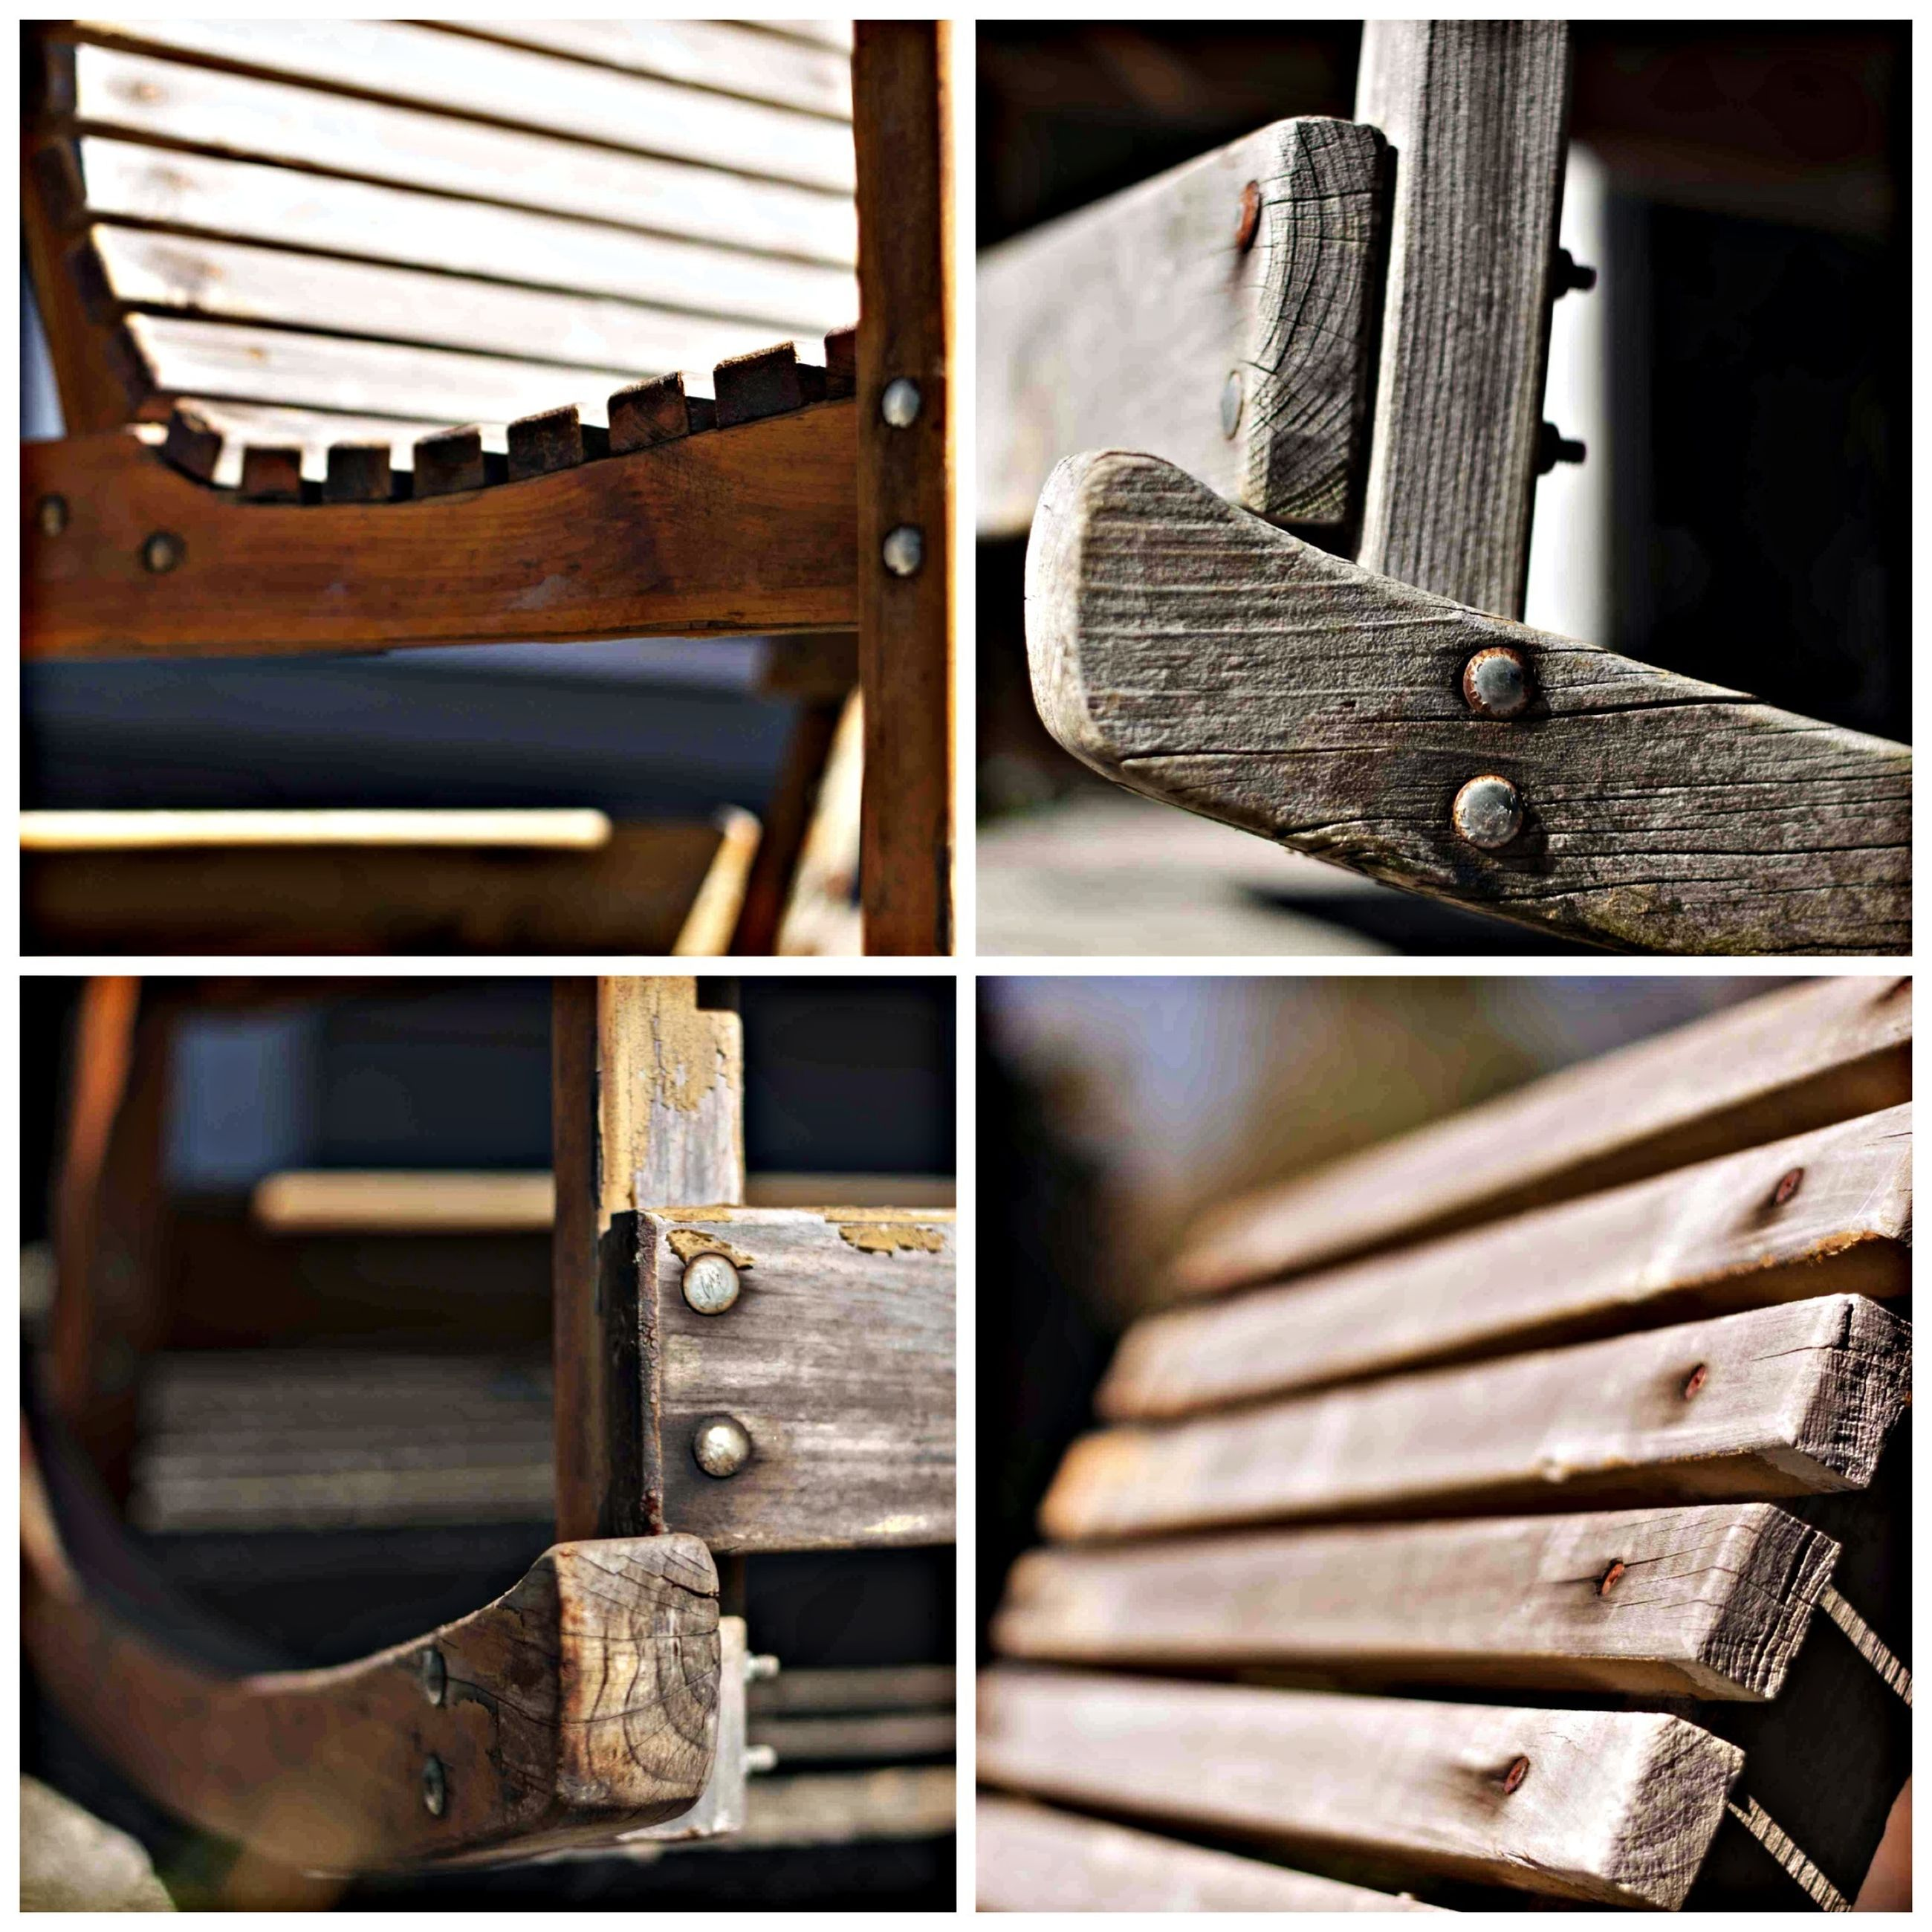 indoors, close-up, chair, absence, wood - material, part of, transfer print, seat, music, empty, musical instrument, no people, metal, focus on foreground, wood, auto post production filter, day, piano, cropped, in a row